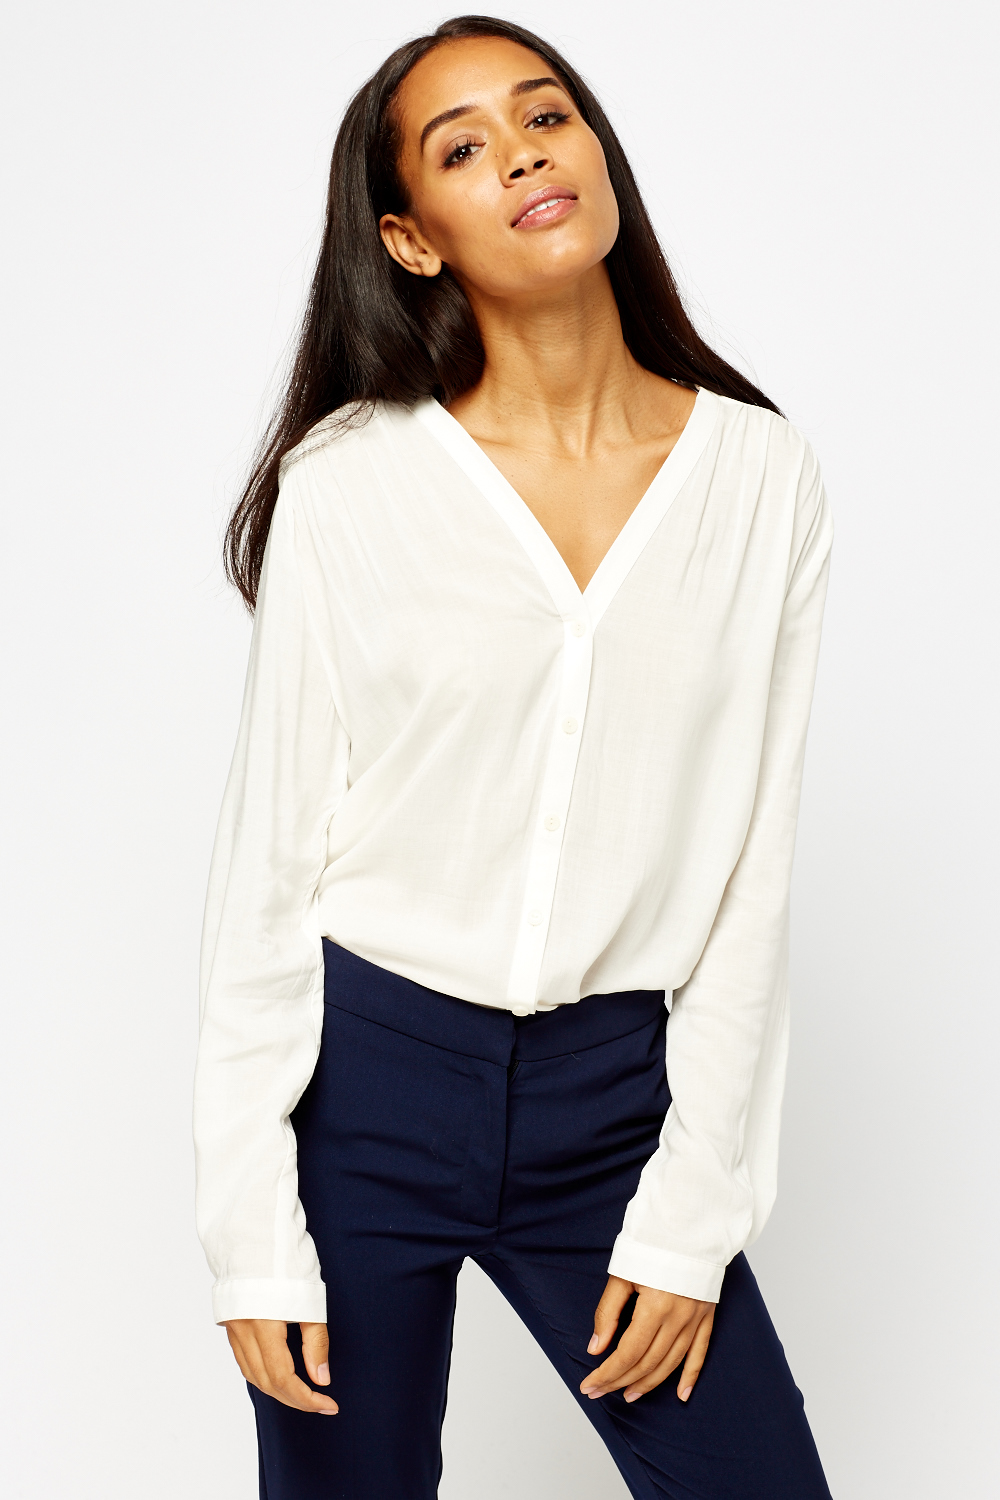 614ec29fa0856 V-Neck Sheer Cream Blouse - Just £5